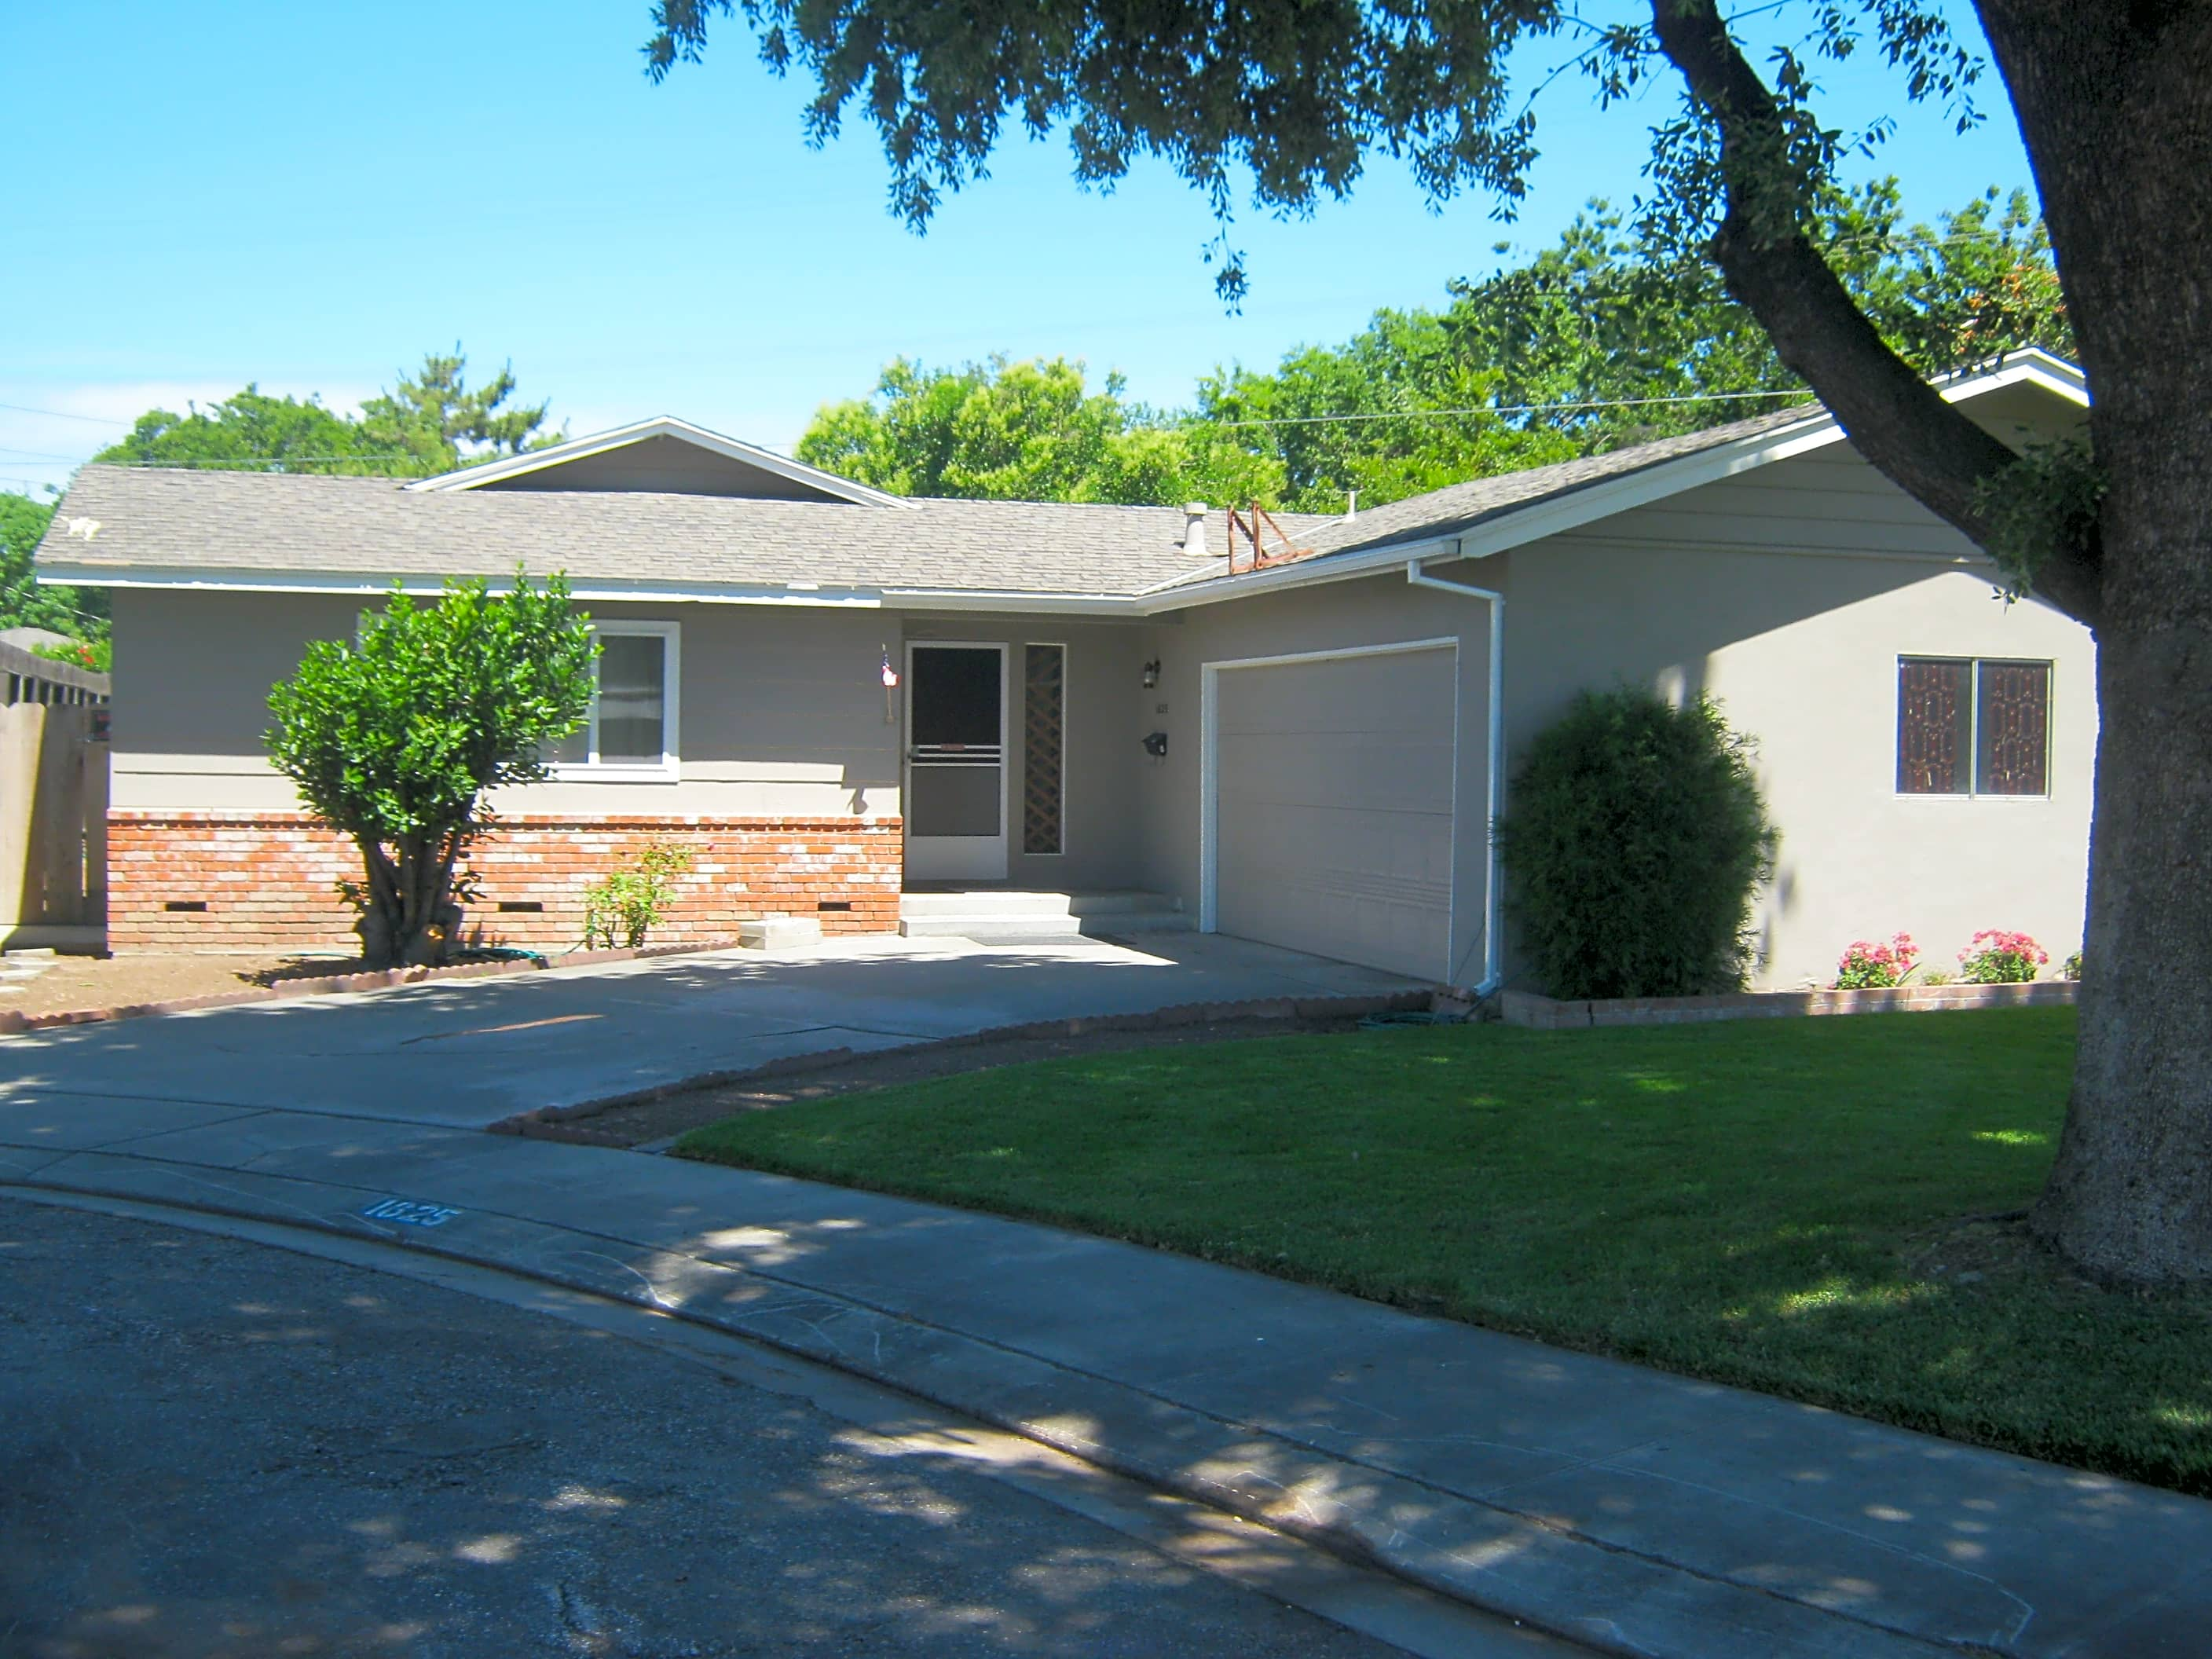 Modesto houses for rent apartments in modesto california House modesto